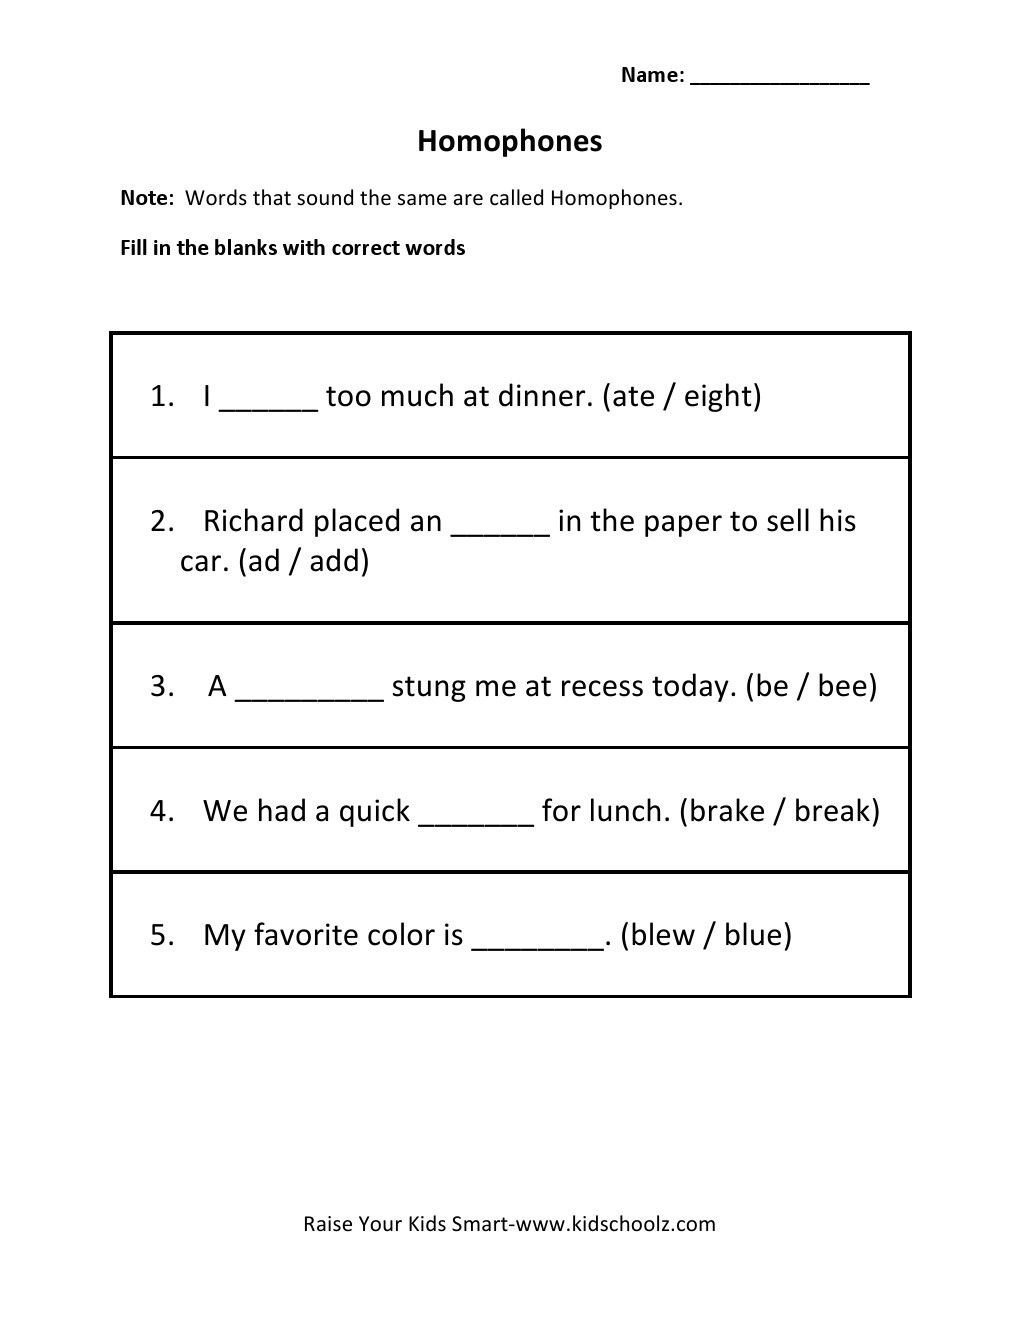 homophones worksheets for grade 5 worksheets 696x901